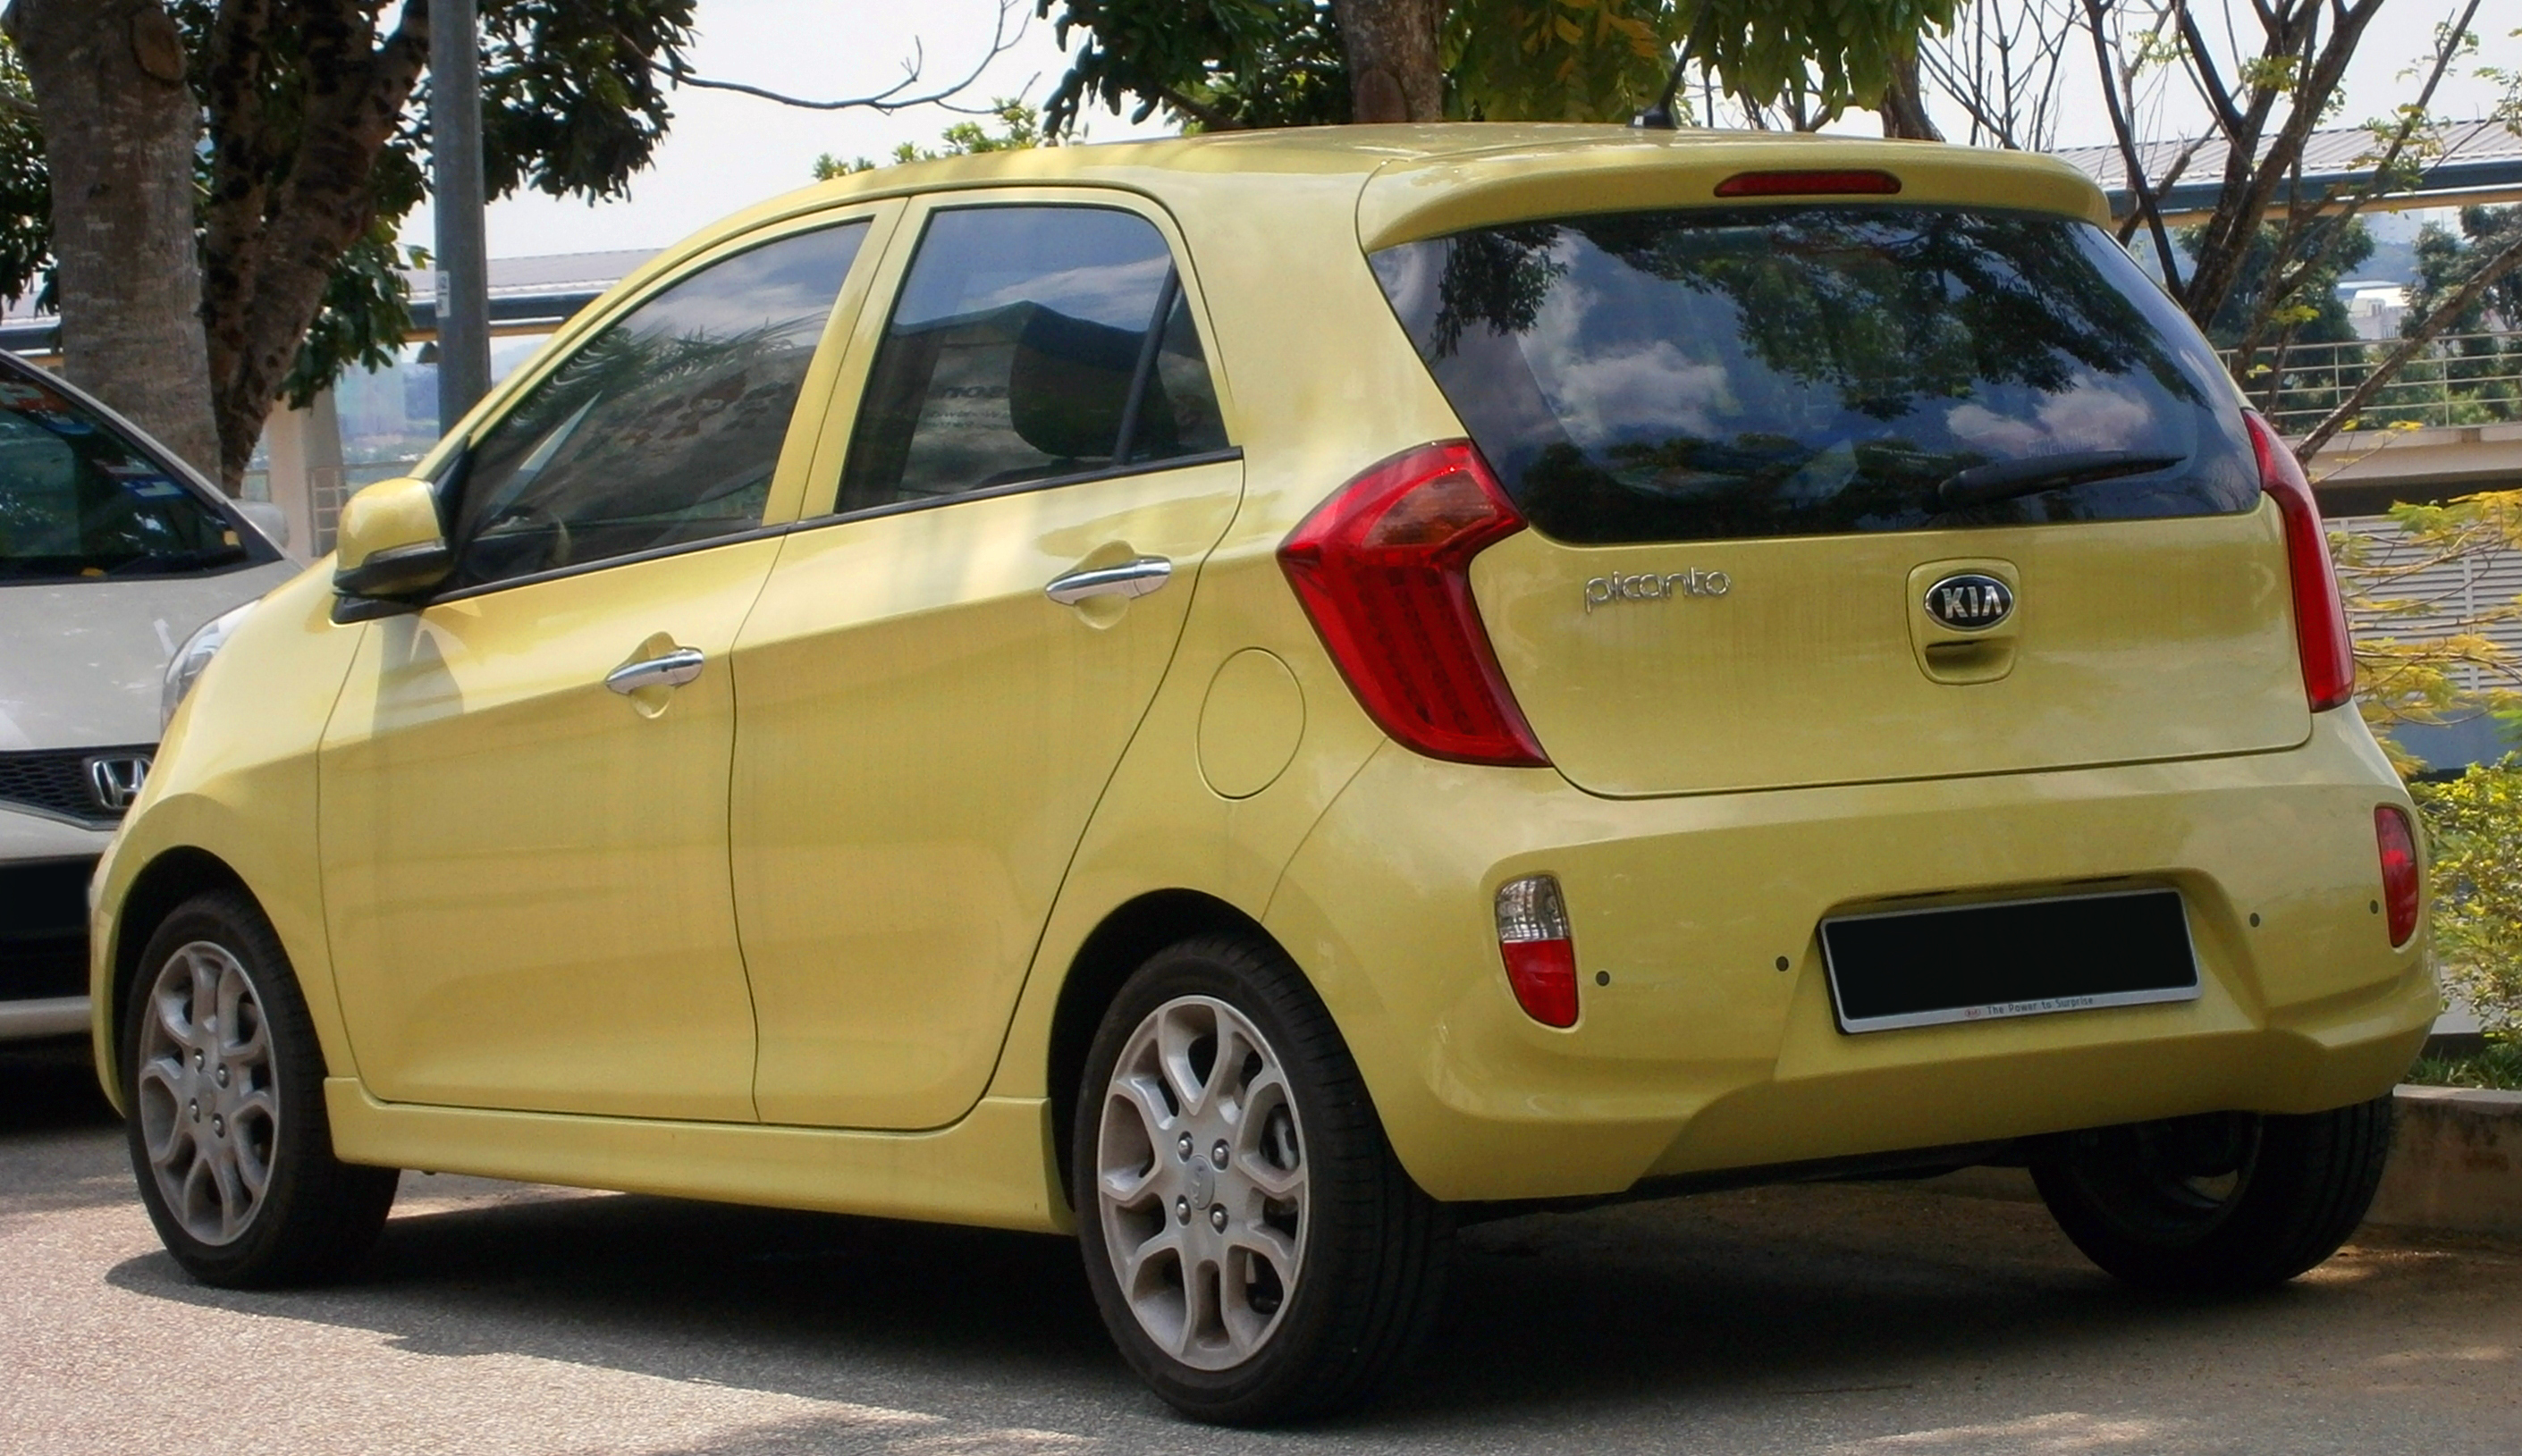 file 2014 kia picanto at in cyberjaya malaysia 02 jpg wikimedia commons. Black Bedroom Furniture Sets. Home Design Ideas